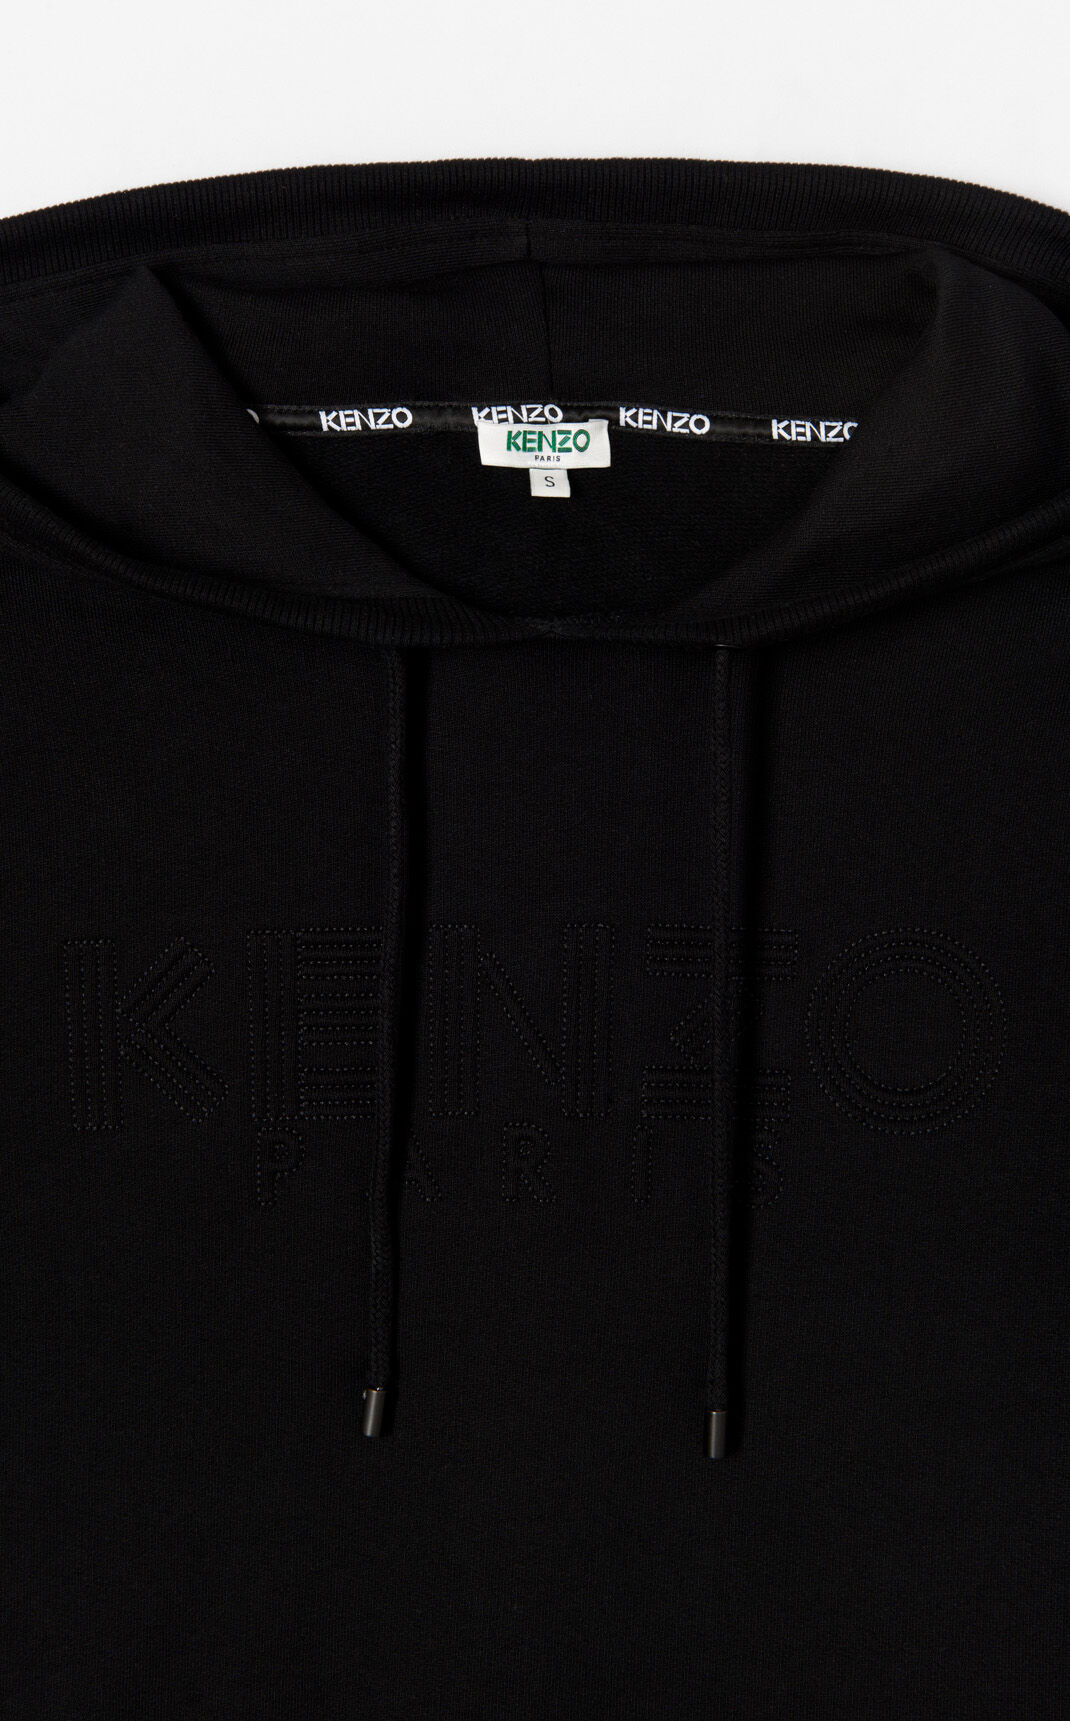 BLACK Sweatshirt dress KENZO Paris for women